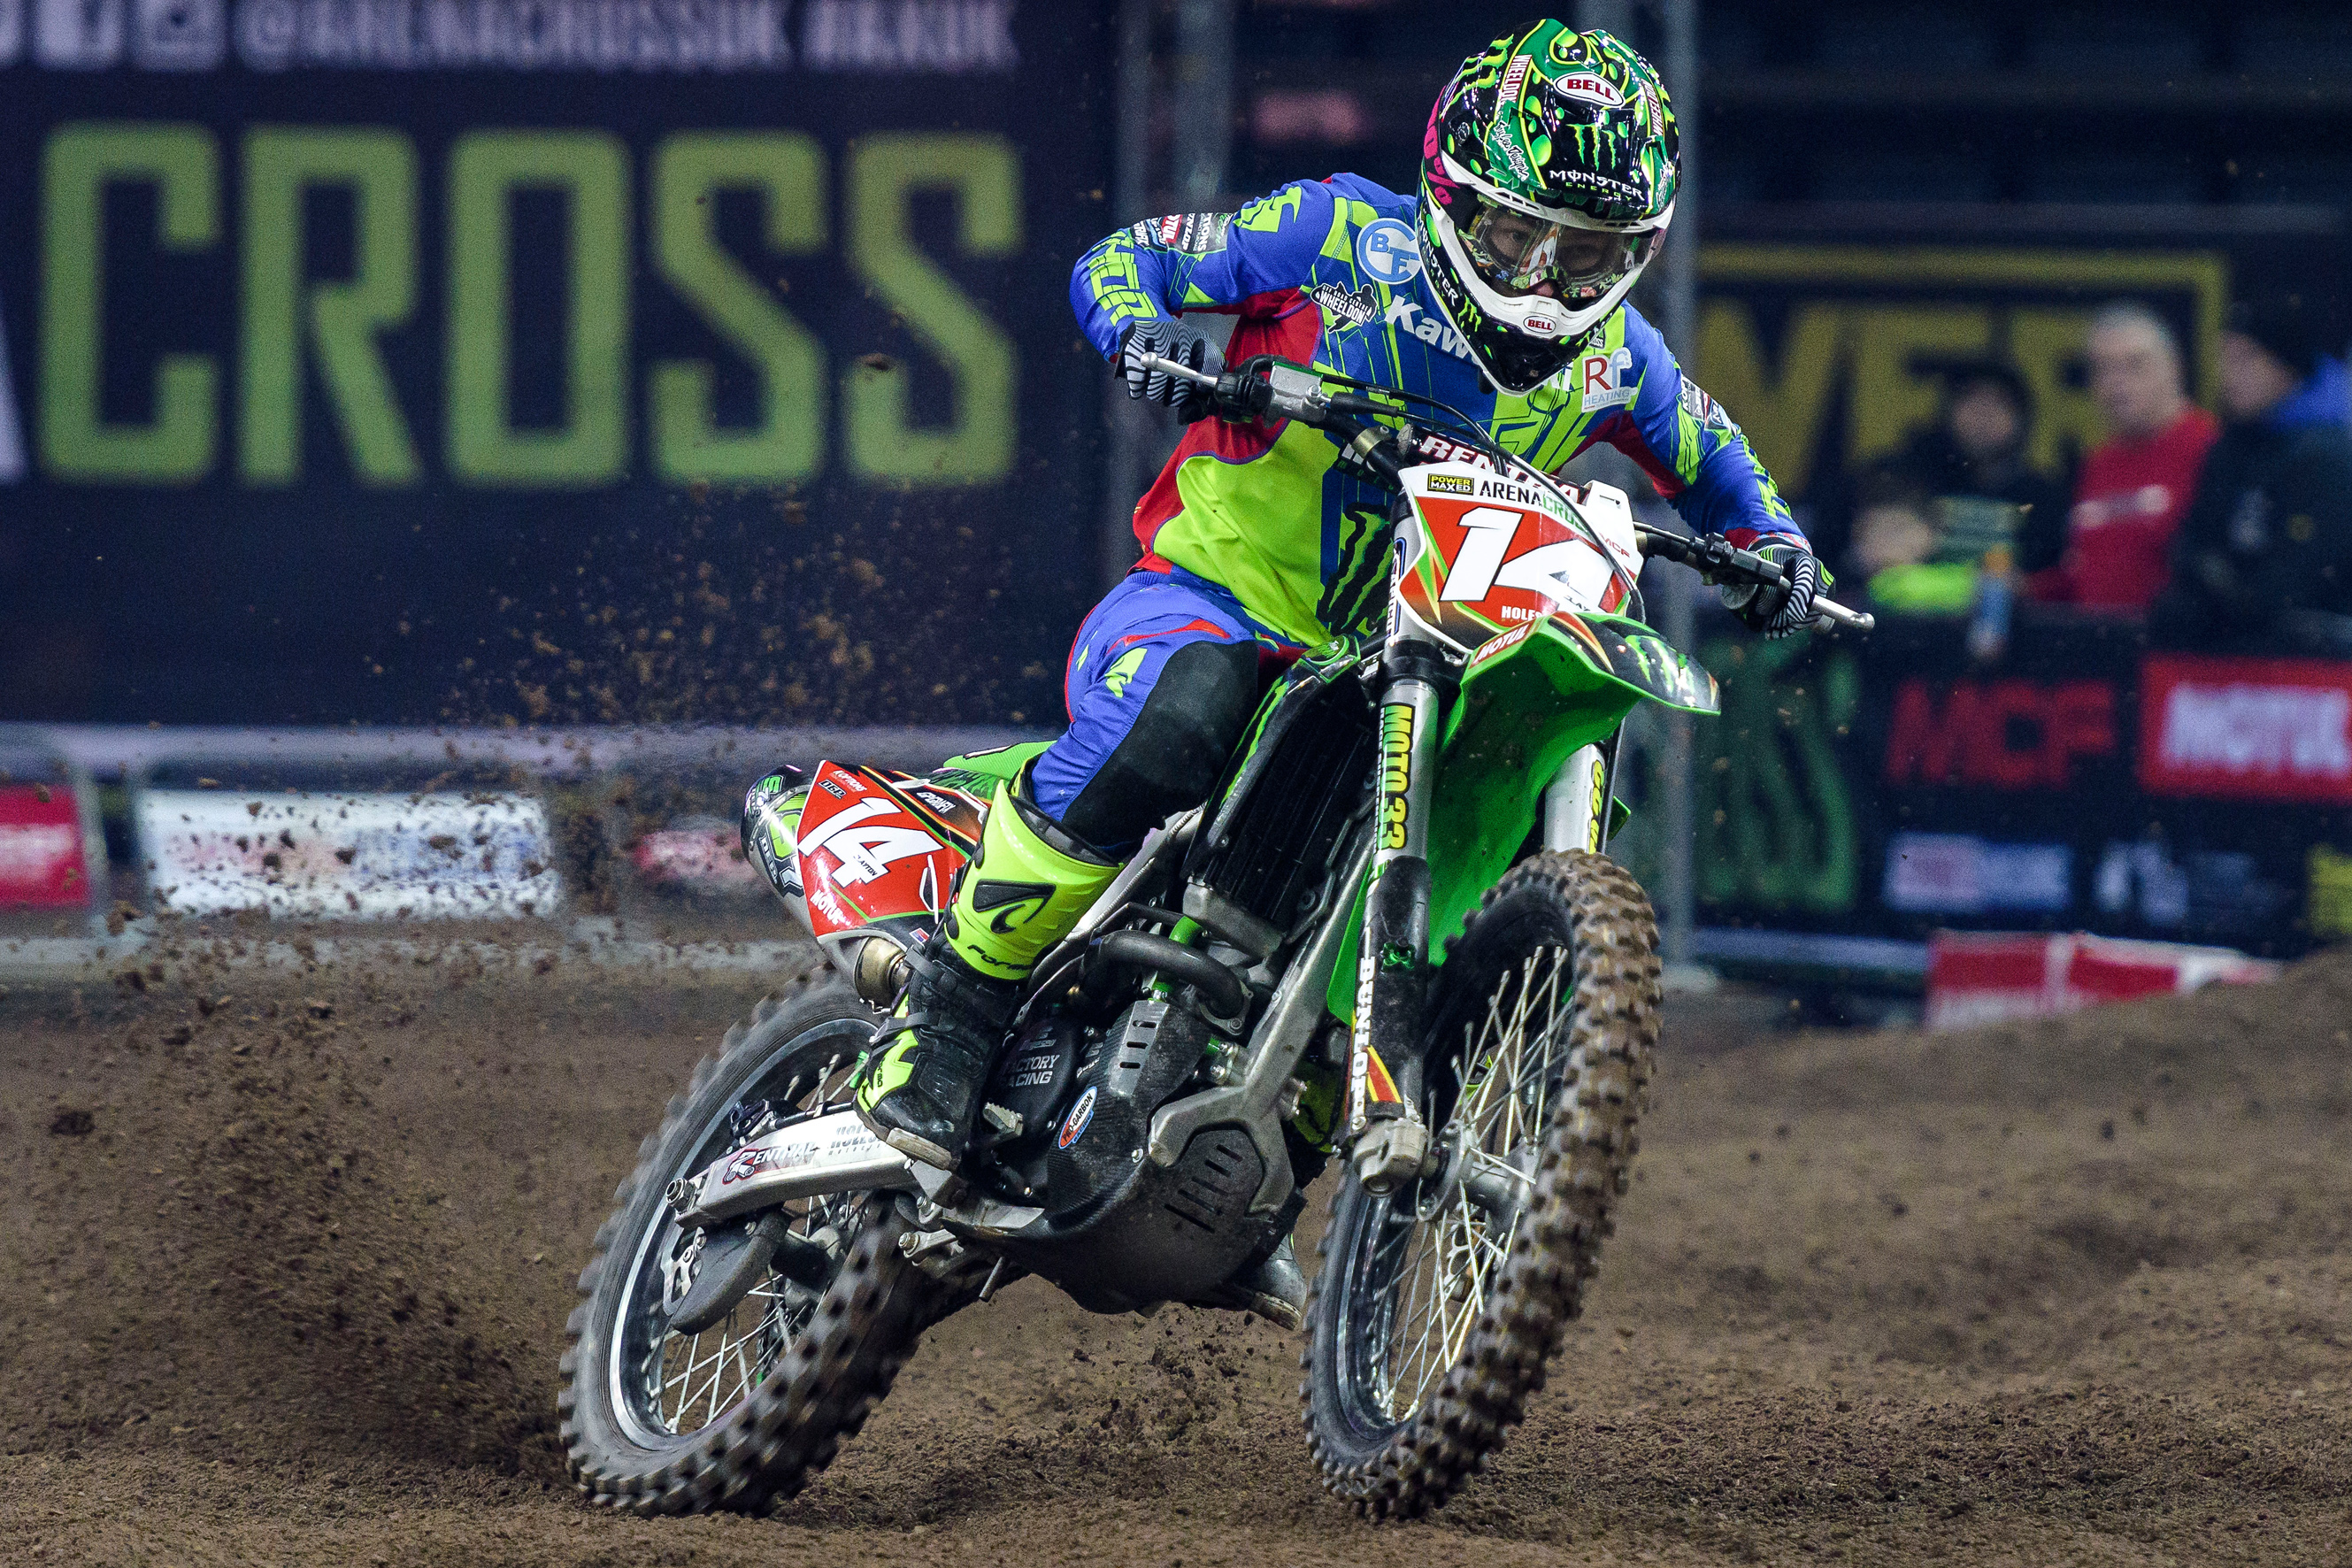 ARENACROSS PROS – THE LOWDOWN